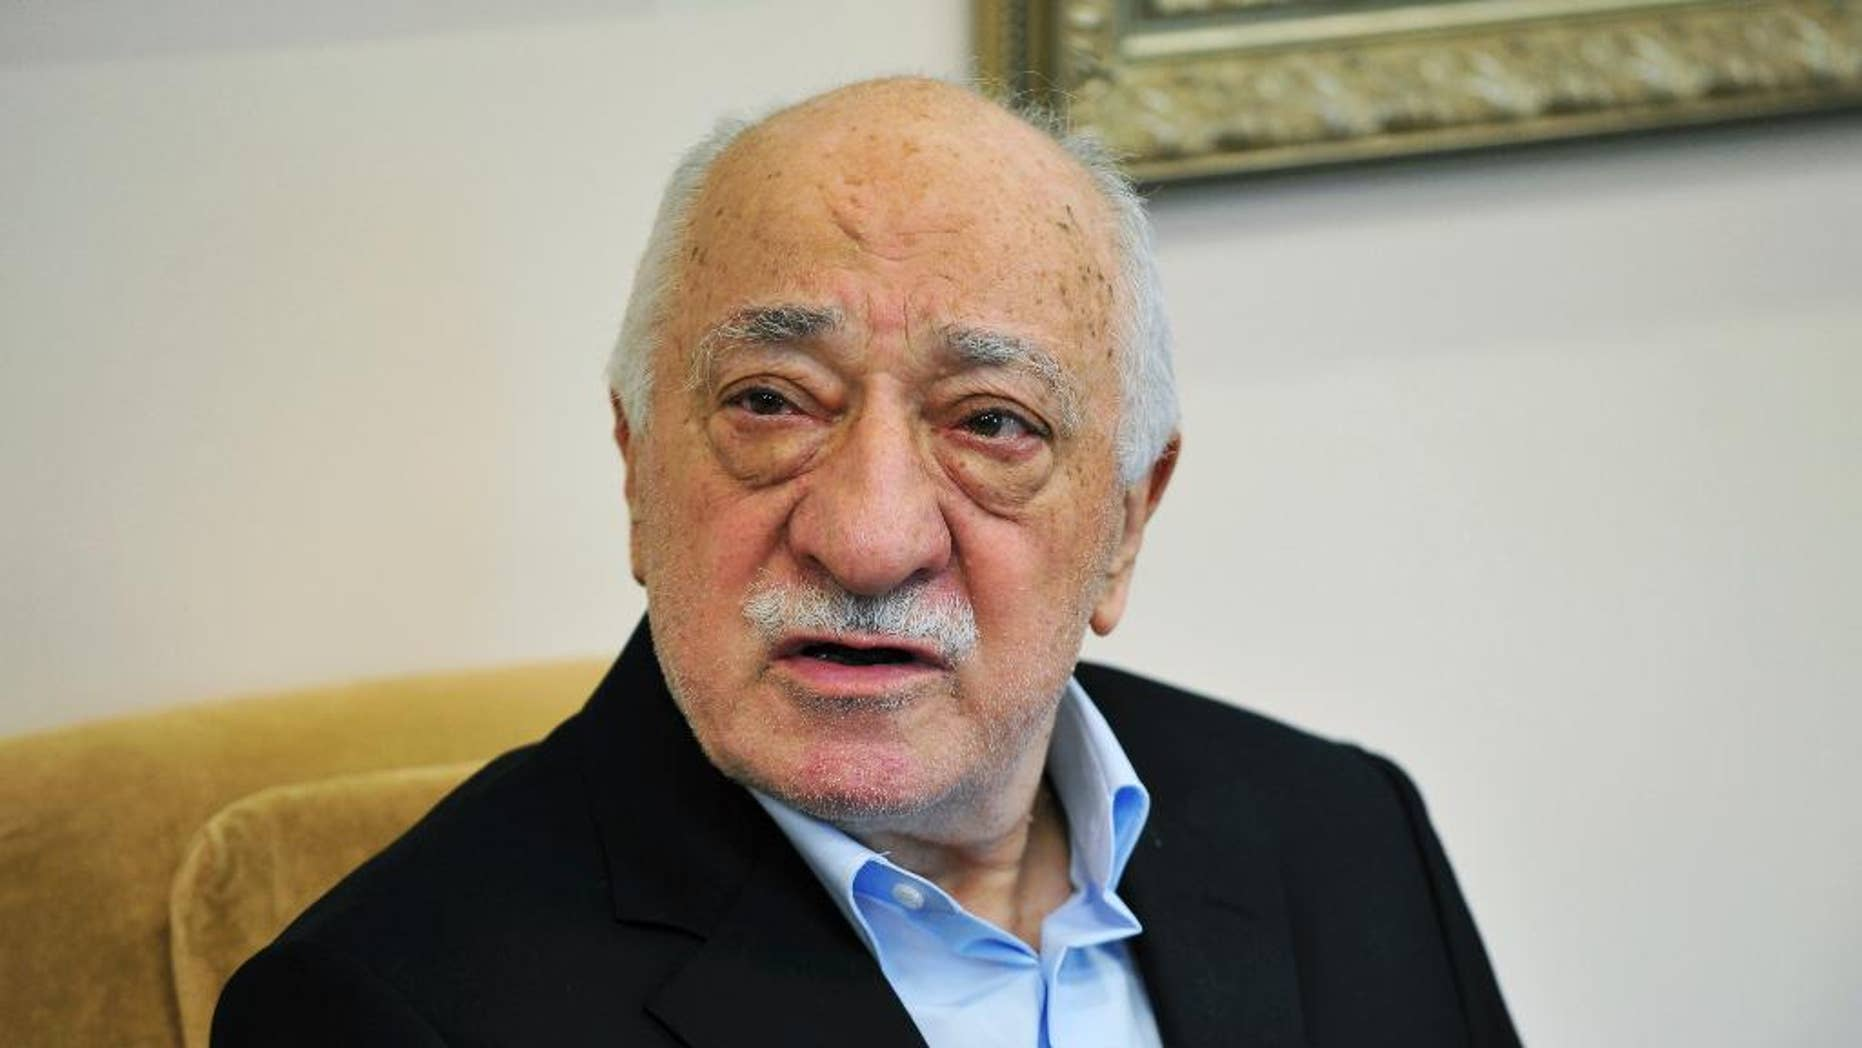 FILE - In this July 17, 2016 file photo, Islamic cleric Fethullah Gulen speaks to members of the media at his compound in Saylorsburg, Pa. A senior U.S. official says there are grounds to take seriously Turkey's contention that a Pennsylvania-based Muslim cleric was involved in the failed July coup attempt. Ankara is accusing Fethullah Gulen of orchestrating the attempted coup and is asking the U.S. to extradite him. Gulen denies any involvement and has condemned the coup.  (AP Photo/Chris Post, File)